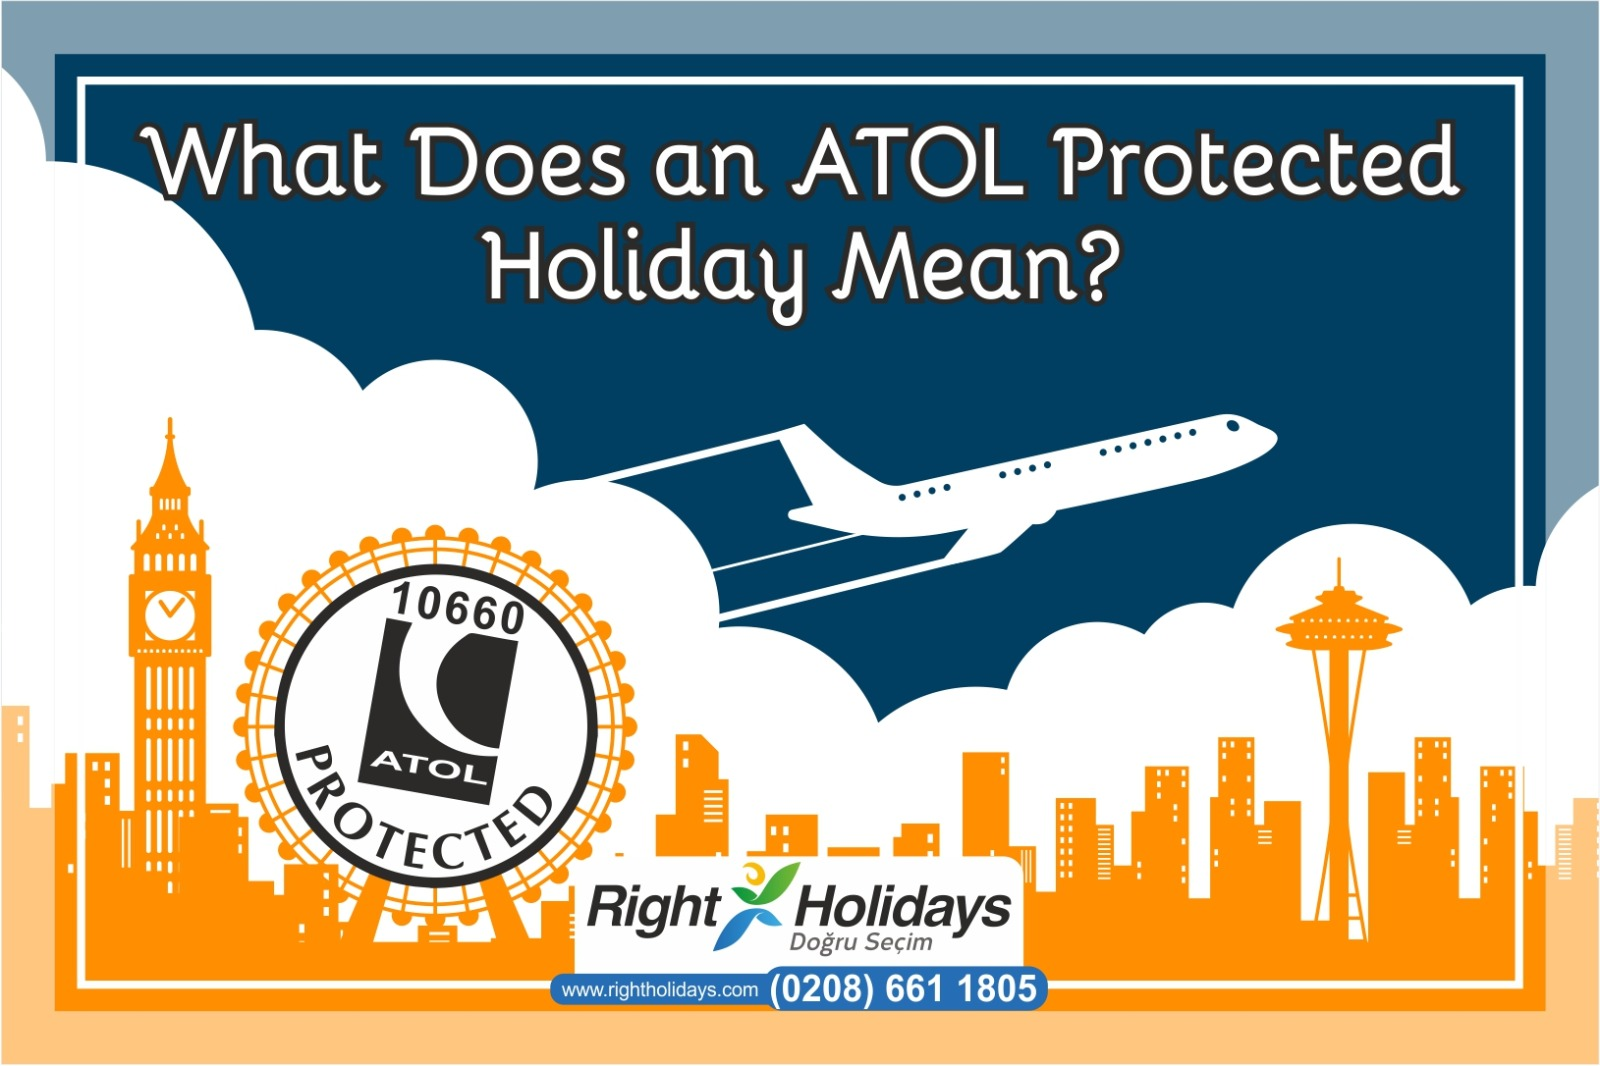 What Does an ATOL Protected Holiday Mean?